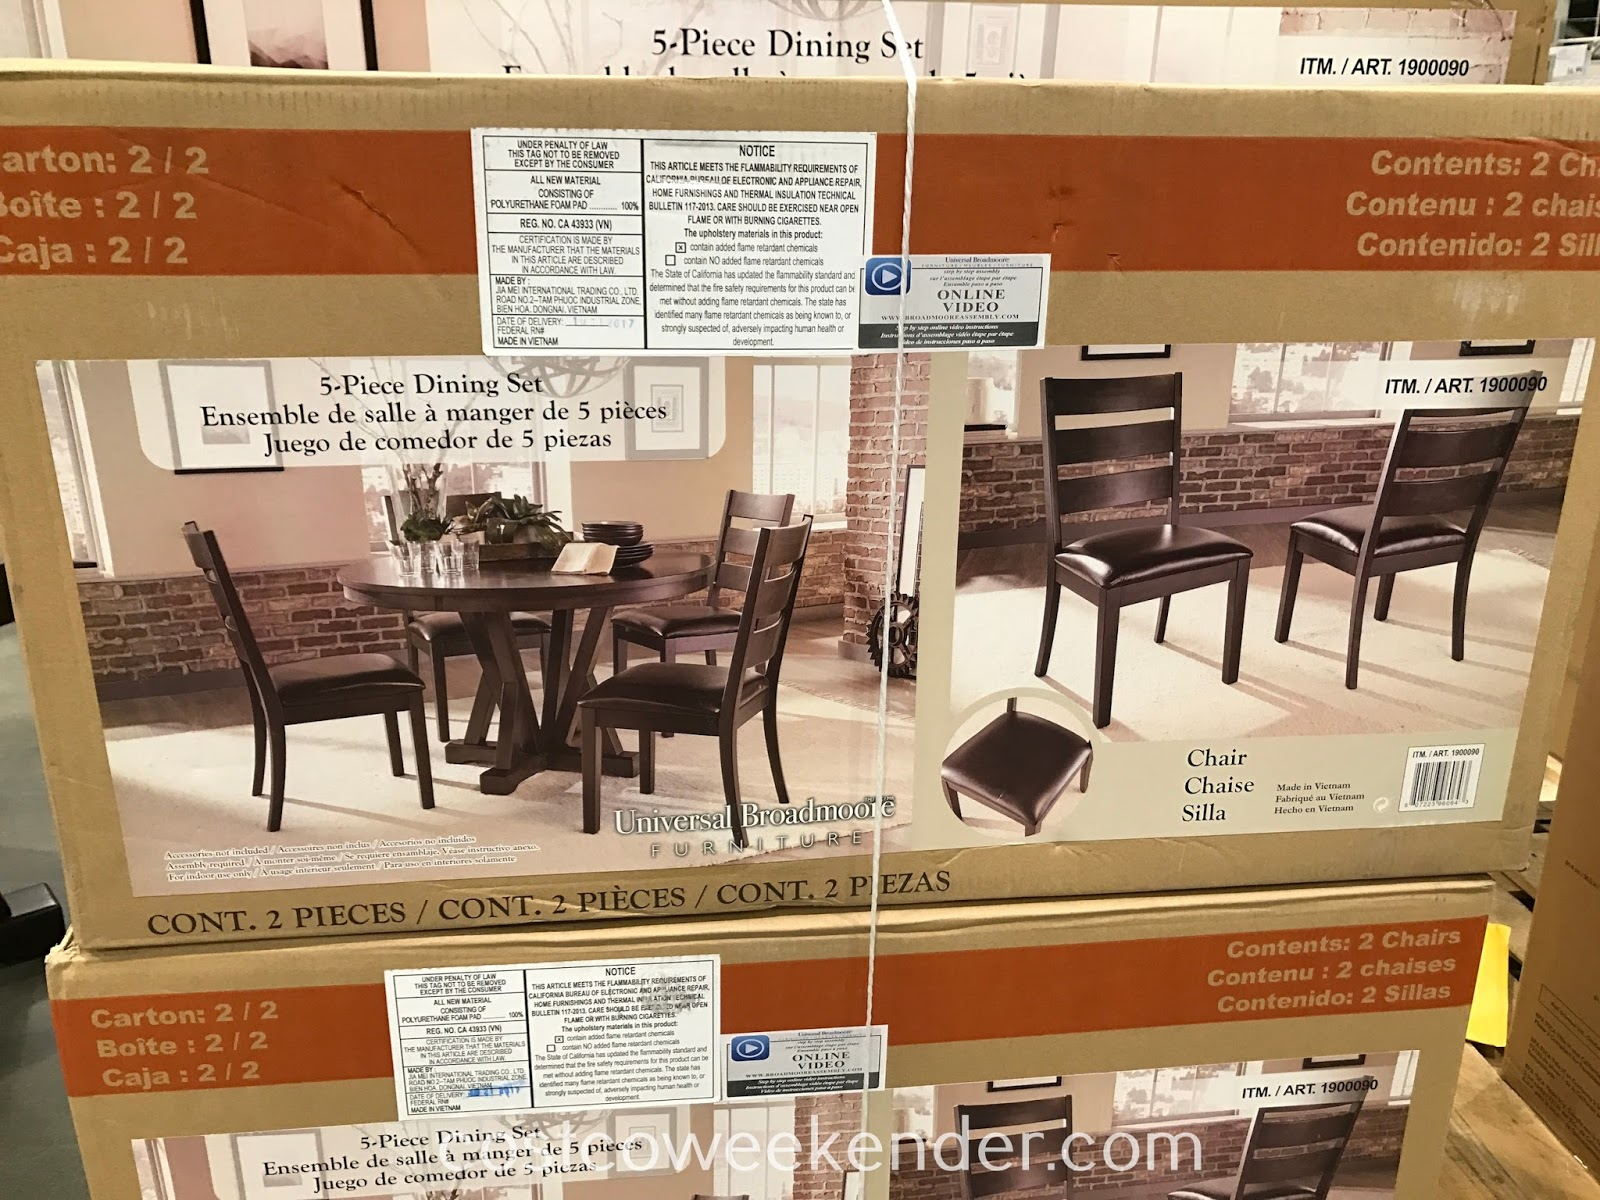 Costco 1900090 - Universal Broadmoore 5-piece Round Dining Set: contemporary styling, quality dining